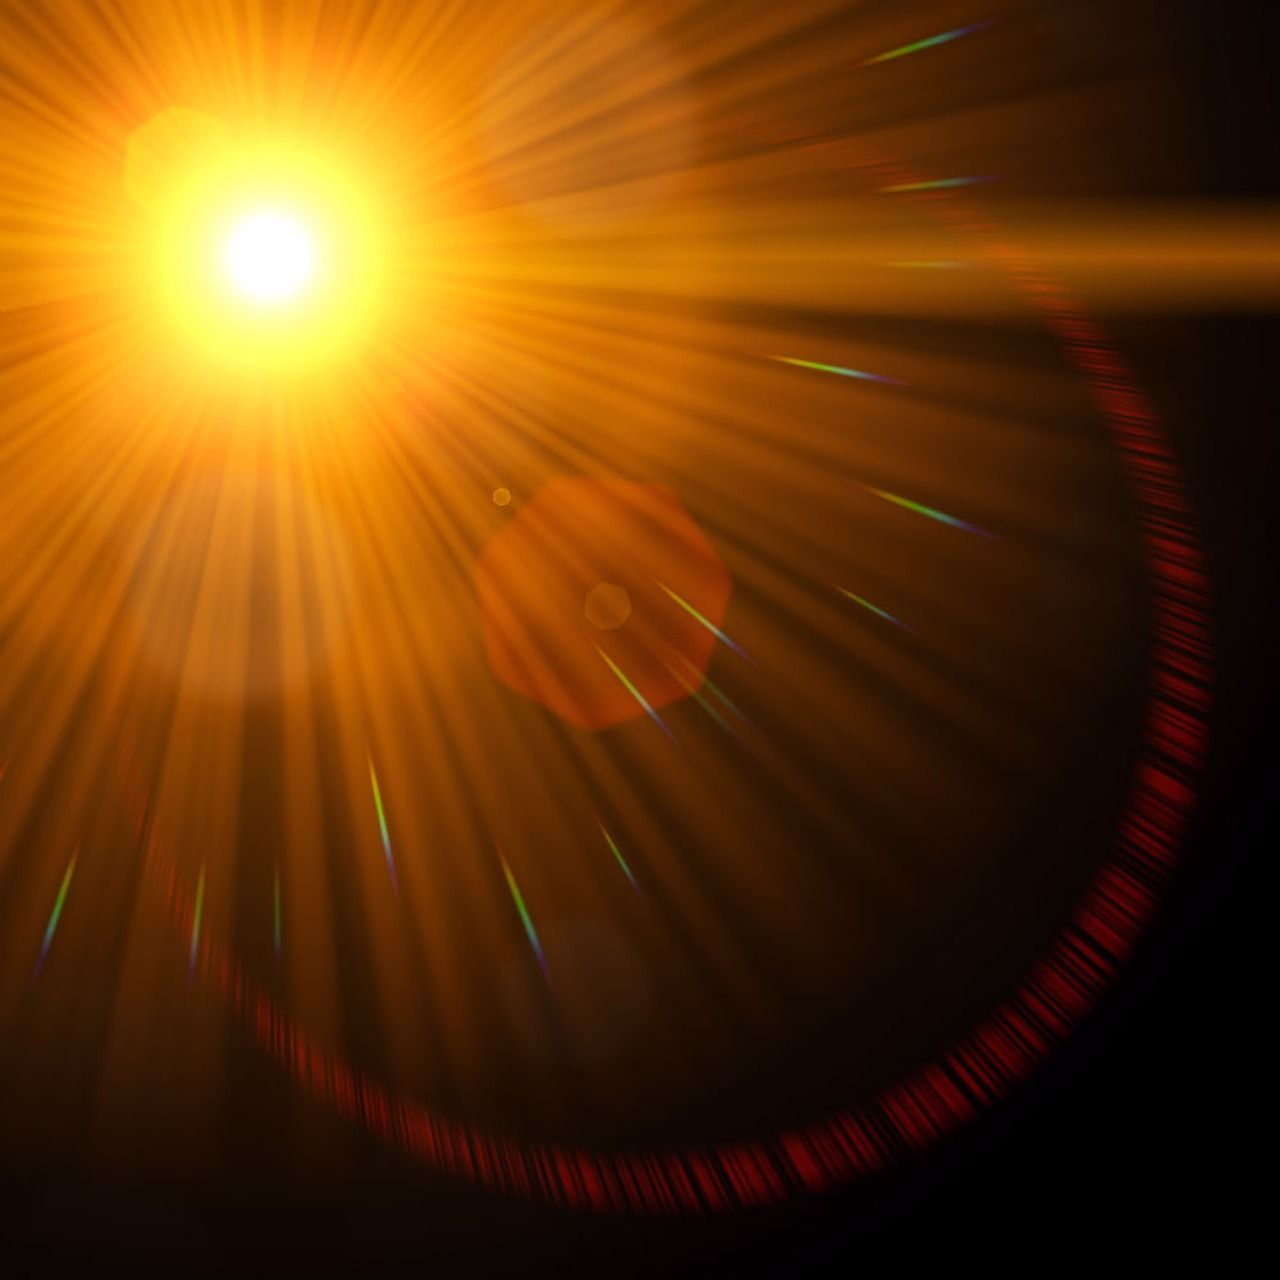 Free Image On Pixabay Graphic Abstract Lens Flare Light Background Images Best Background Images New Background Images